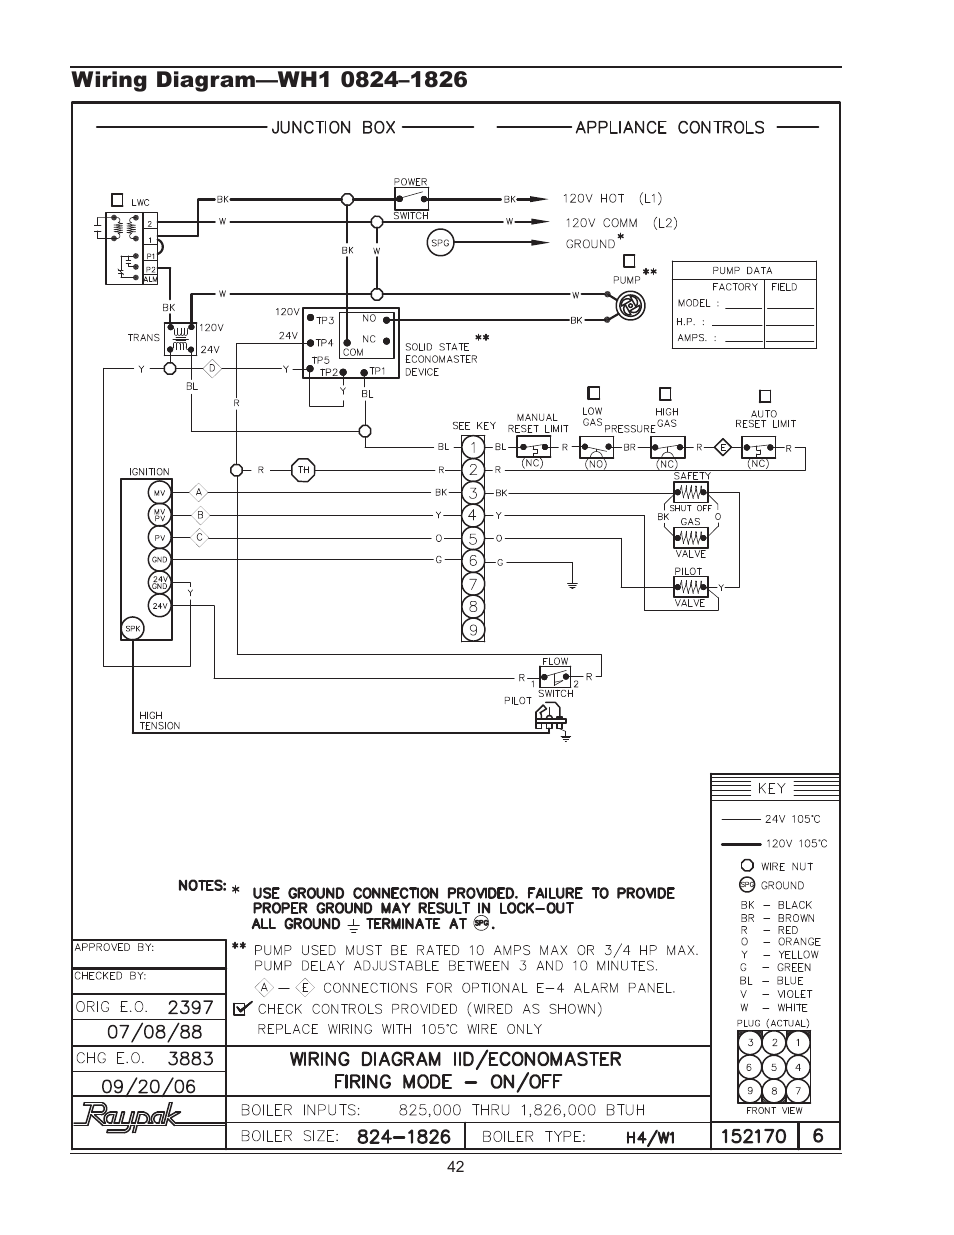 Wiring diagram—wh1 21, Wiring diagram—wh1 2100–2500 | Raypak 1334001 User  Manual | Page 42 / 52